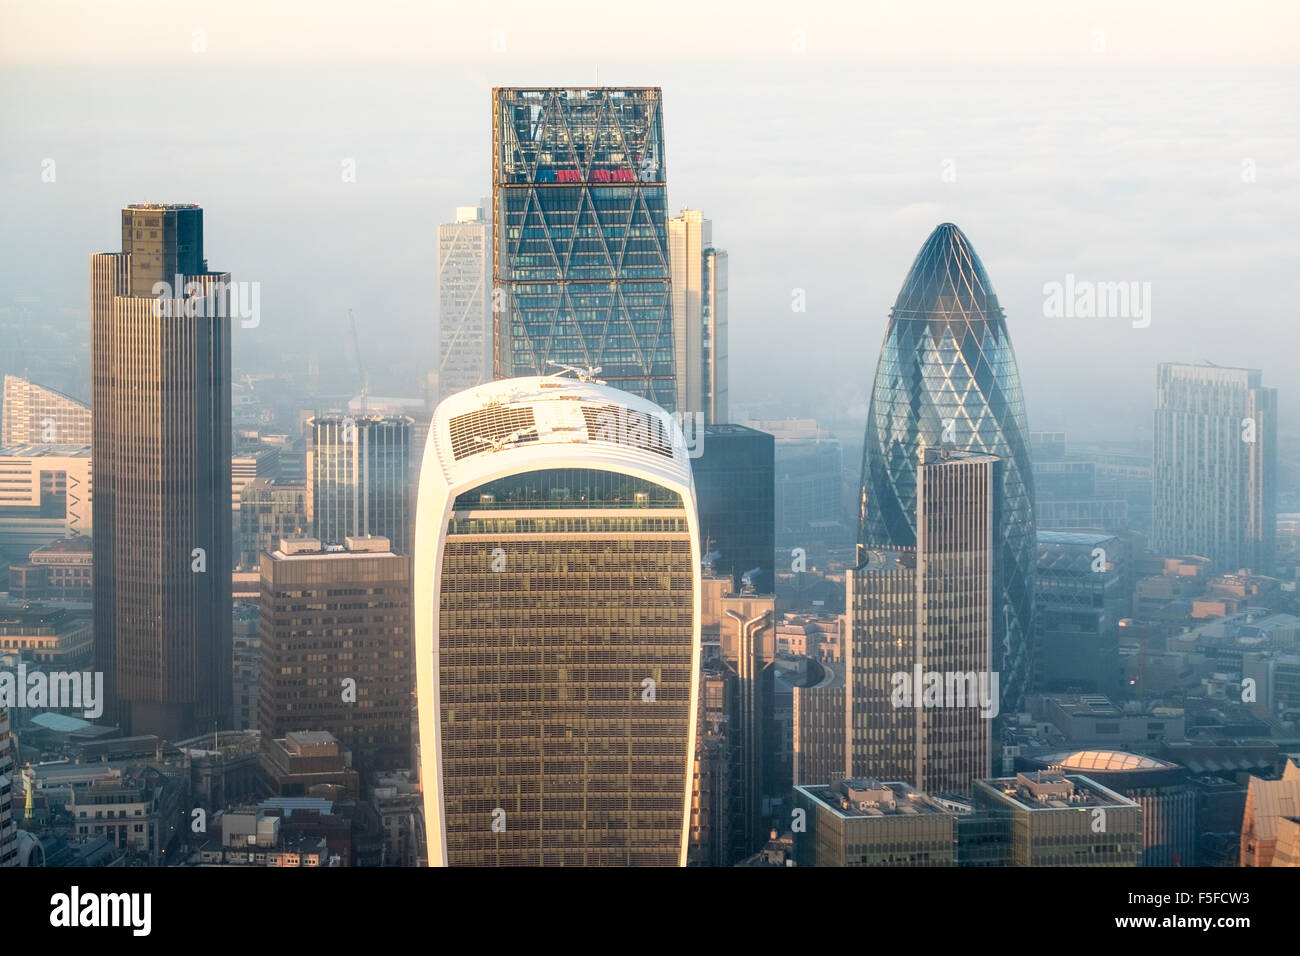 View from the Shard building London with fog and mist starting to rise over the London landscape looking northwards - Stock Image